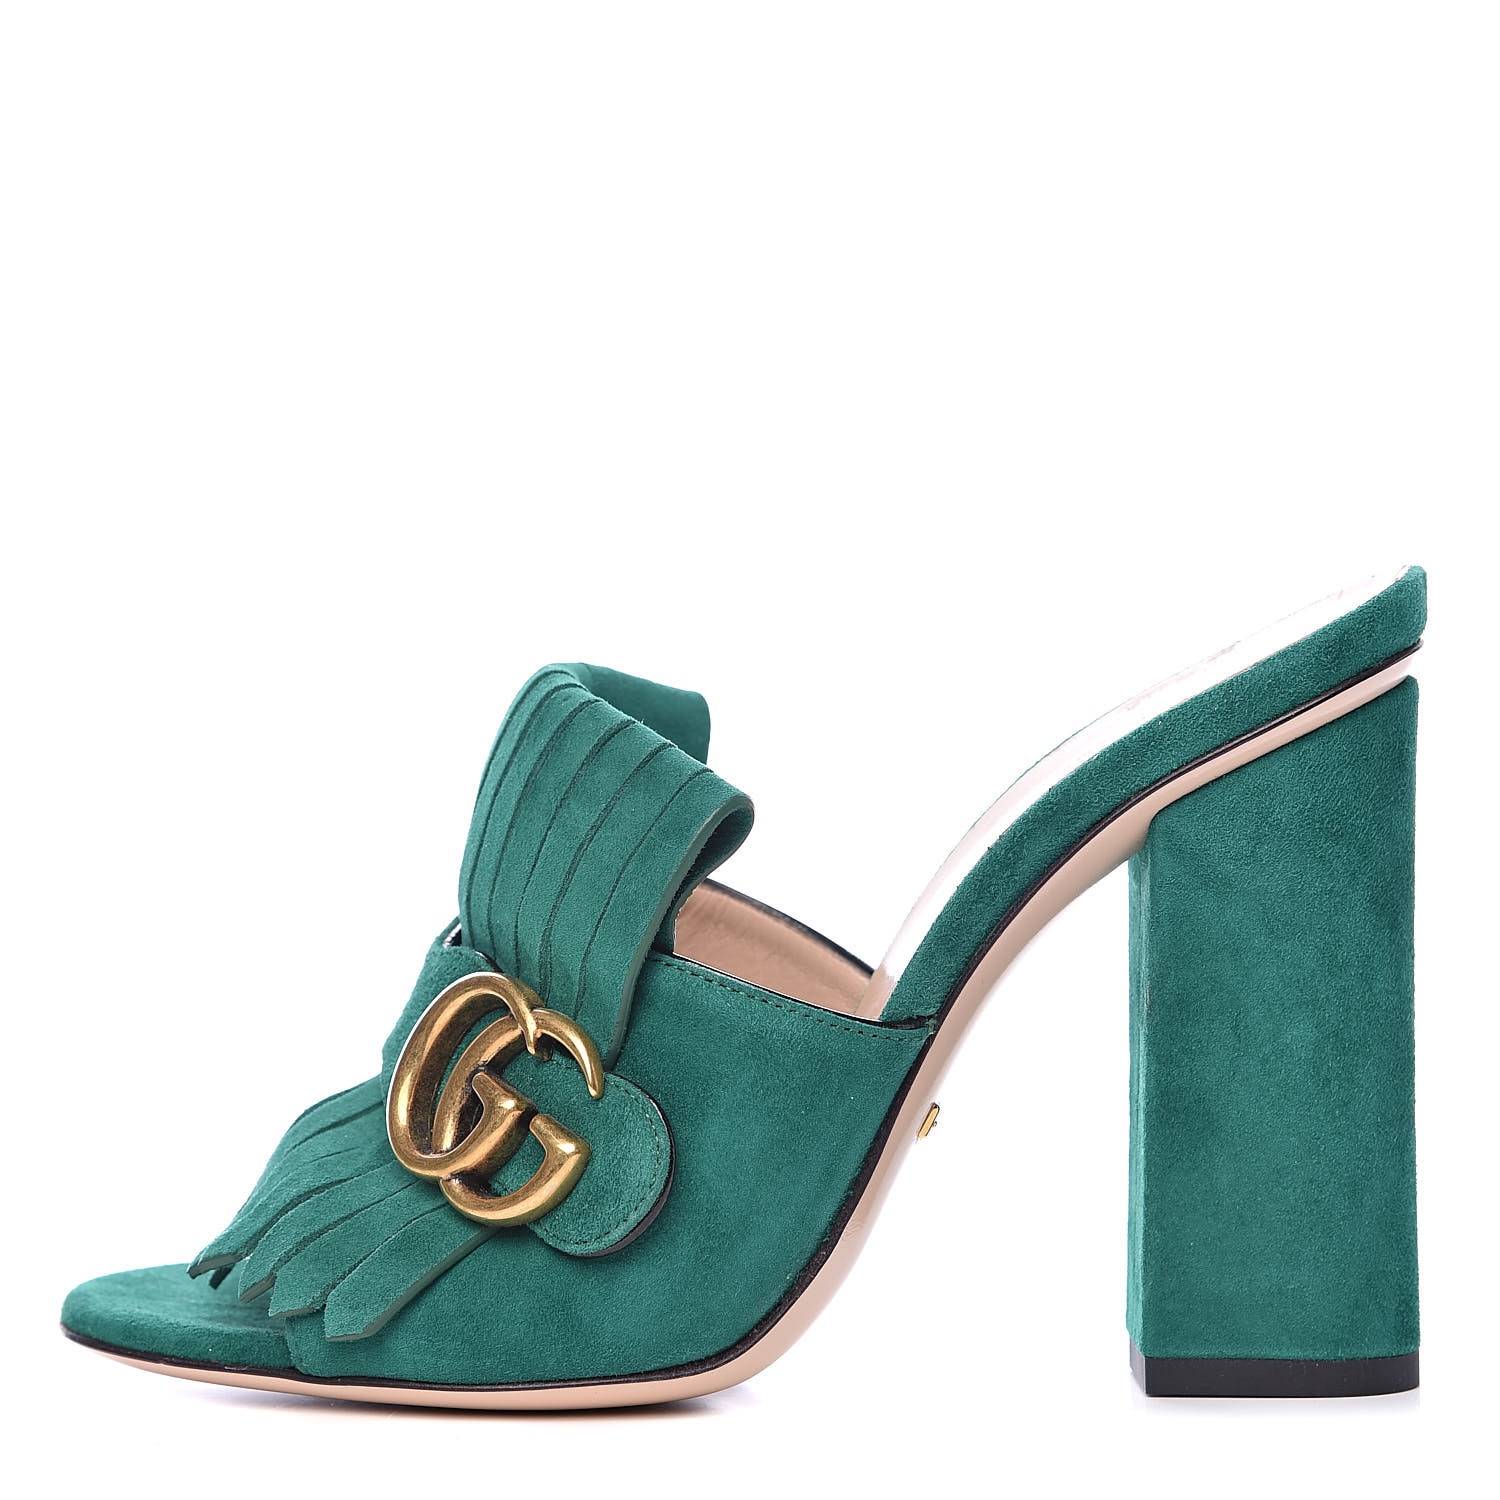 GUCCI FRINGED SUEDE SLIDE HEELS - (Colors Available)